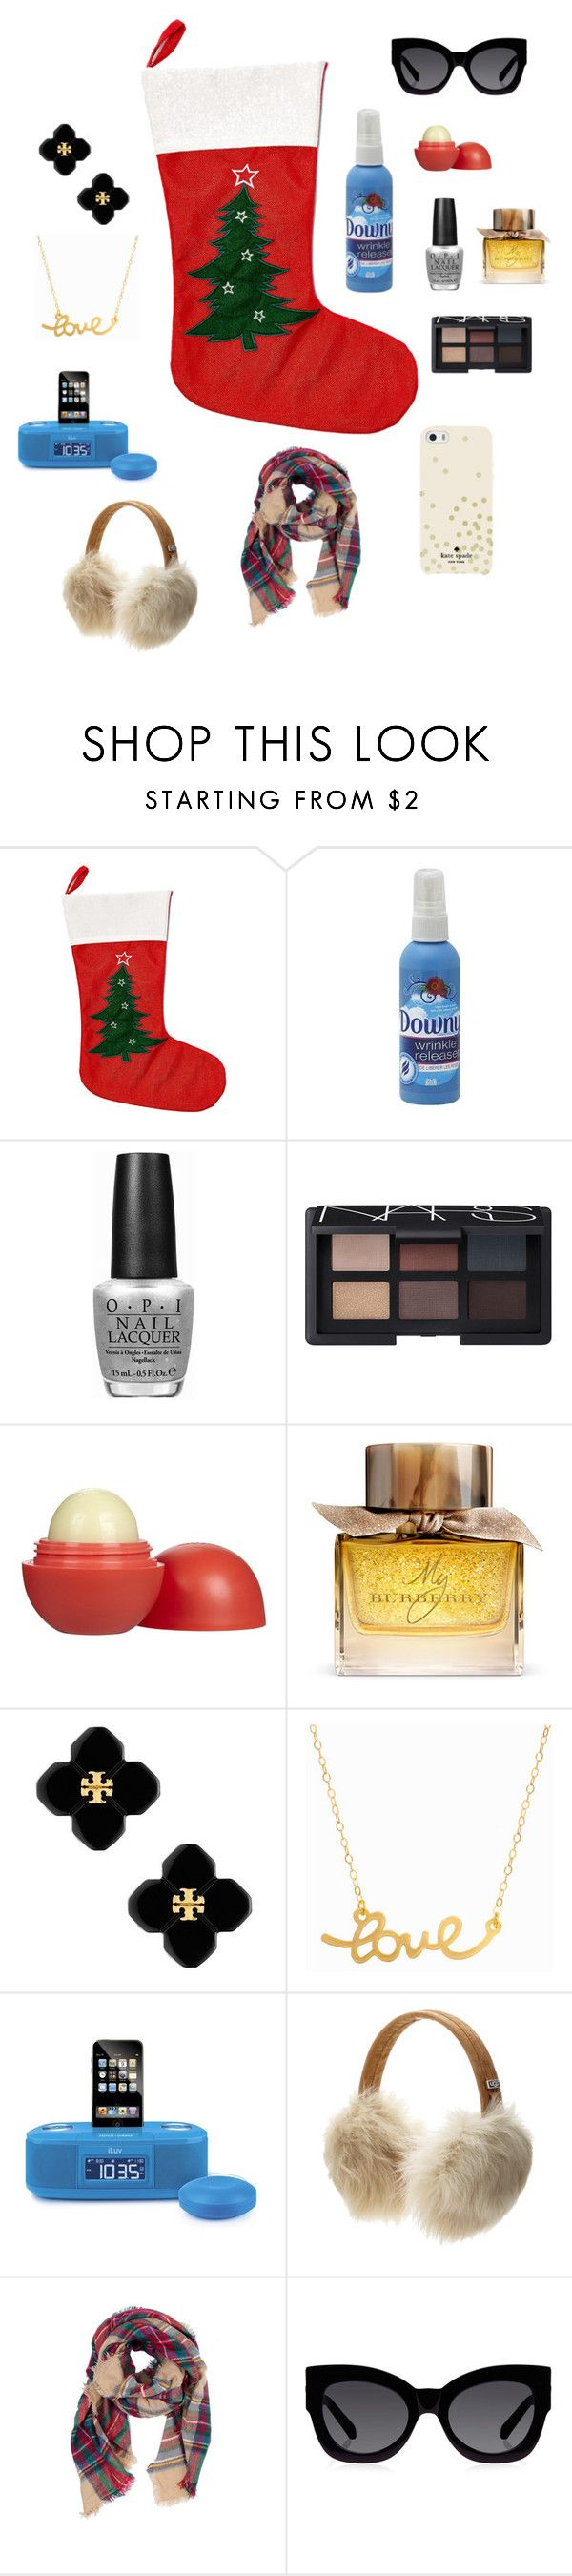 10 Best Gift Ideas Images On Pinterest Small Gifts Xmas